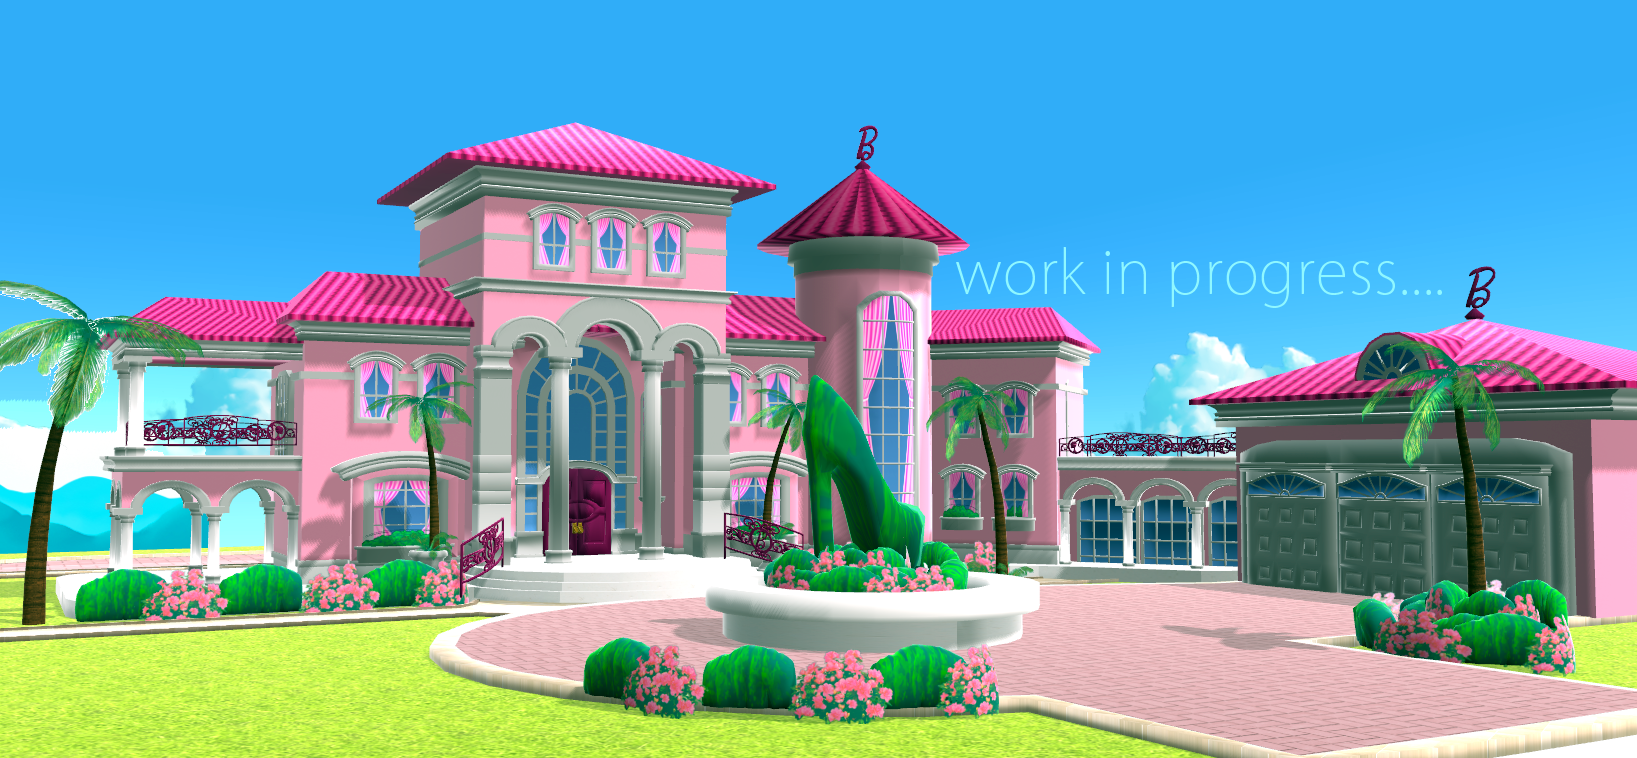 Barbie dream house wip 2 by chatterhead on deviantart for Dream house 3d